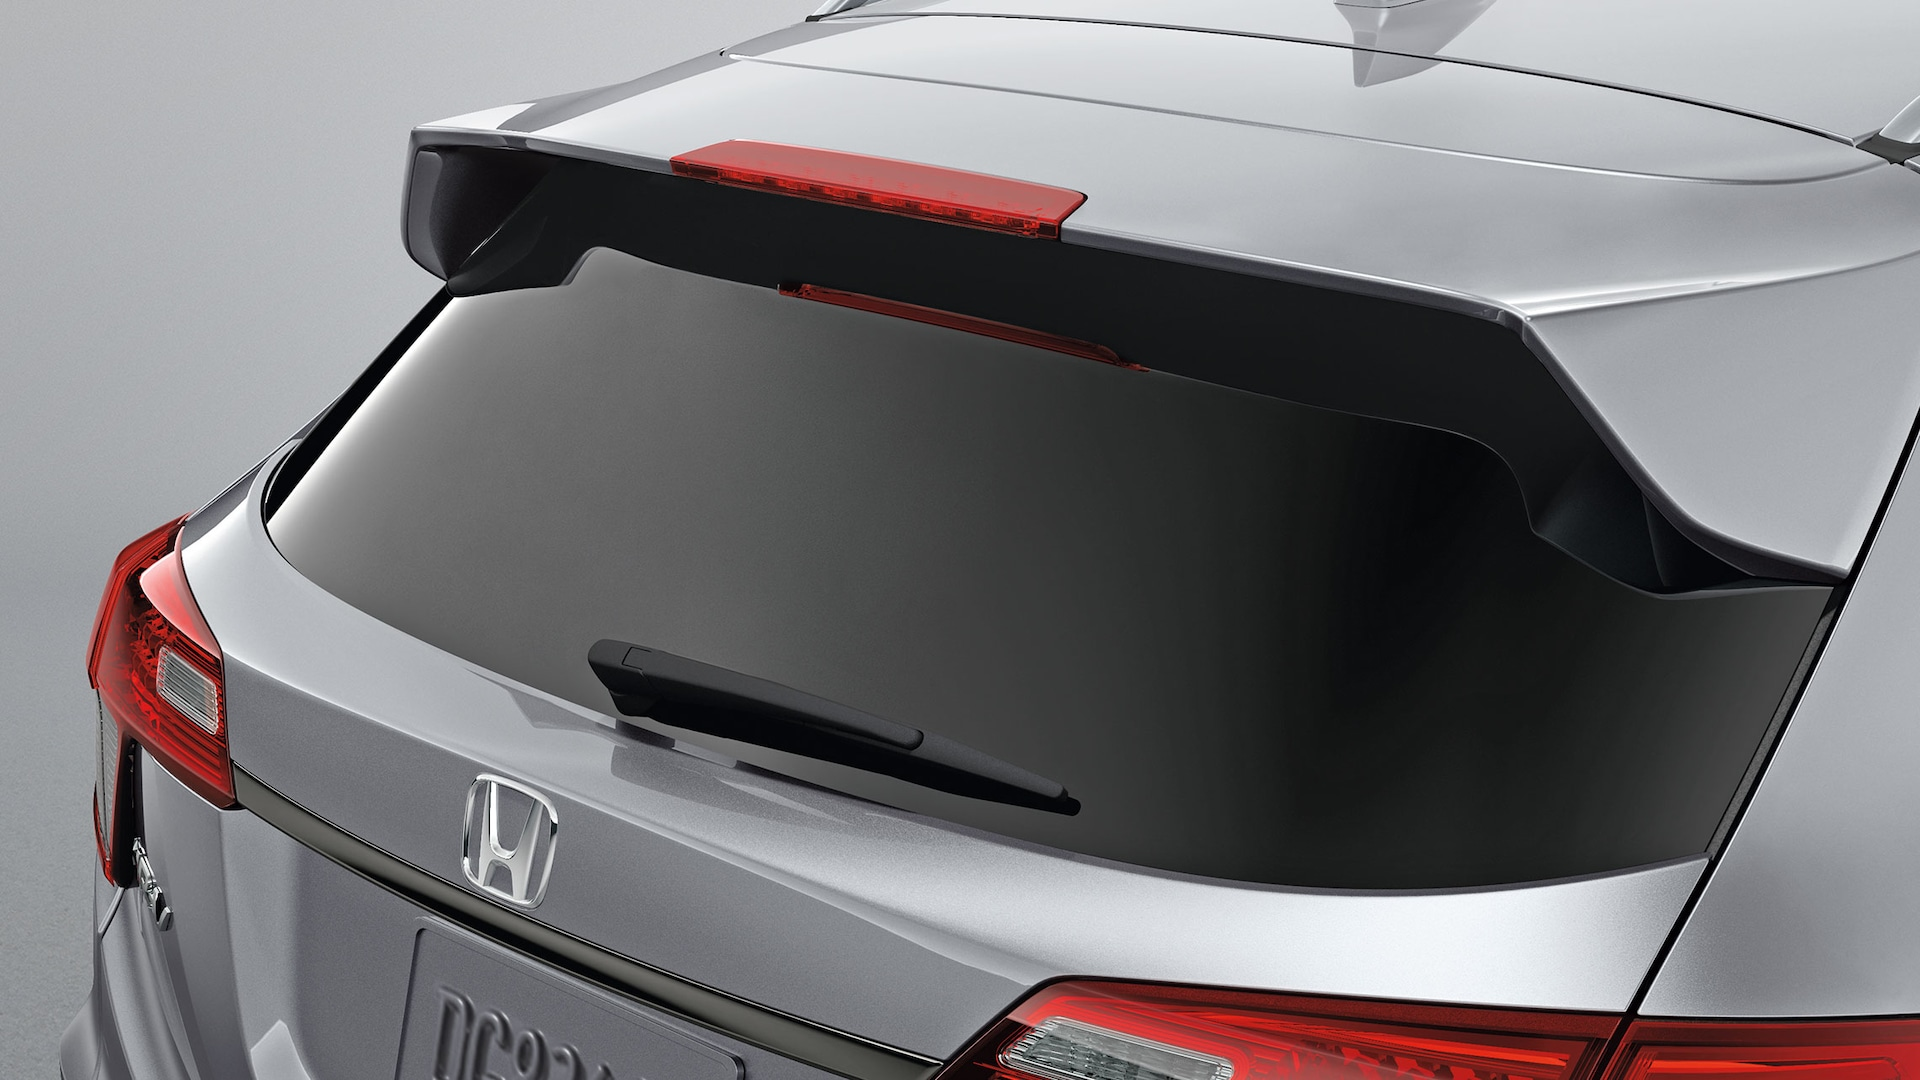 Accessory tailgate spoiler detail on the 2020 Honda HR-V in Lunar Silver Metallic.